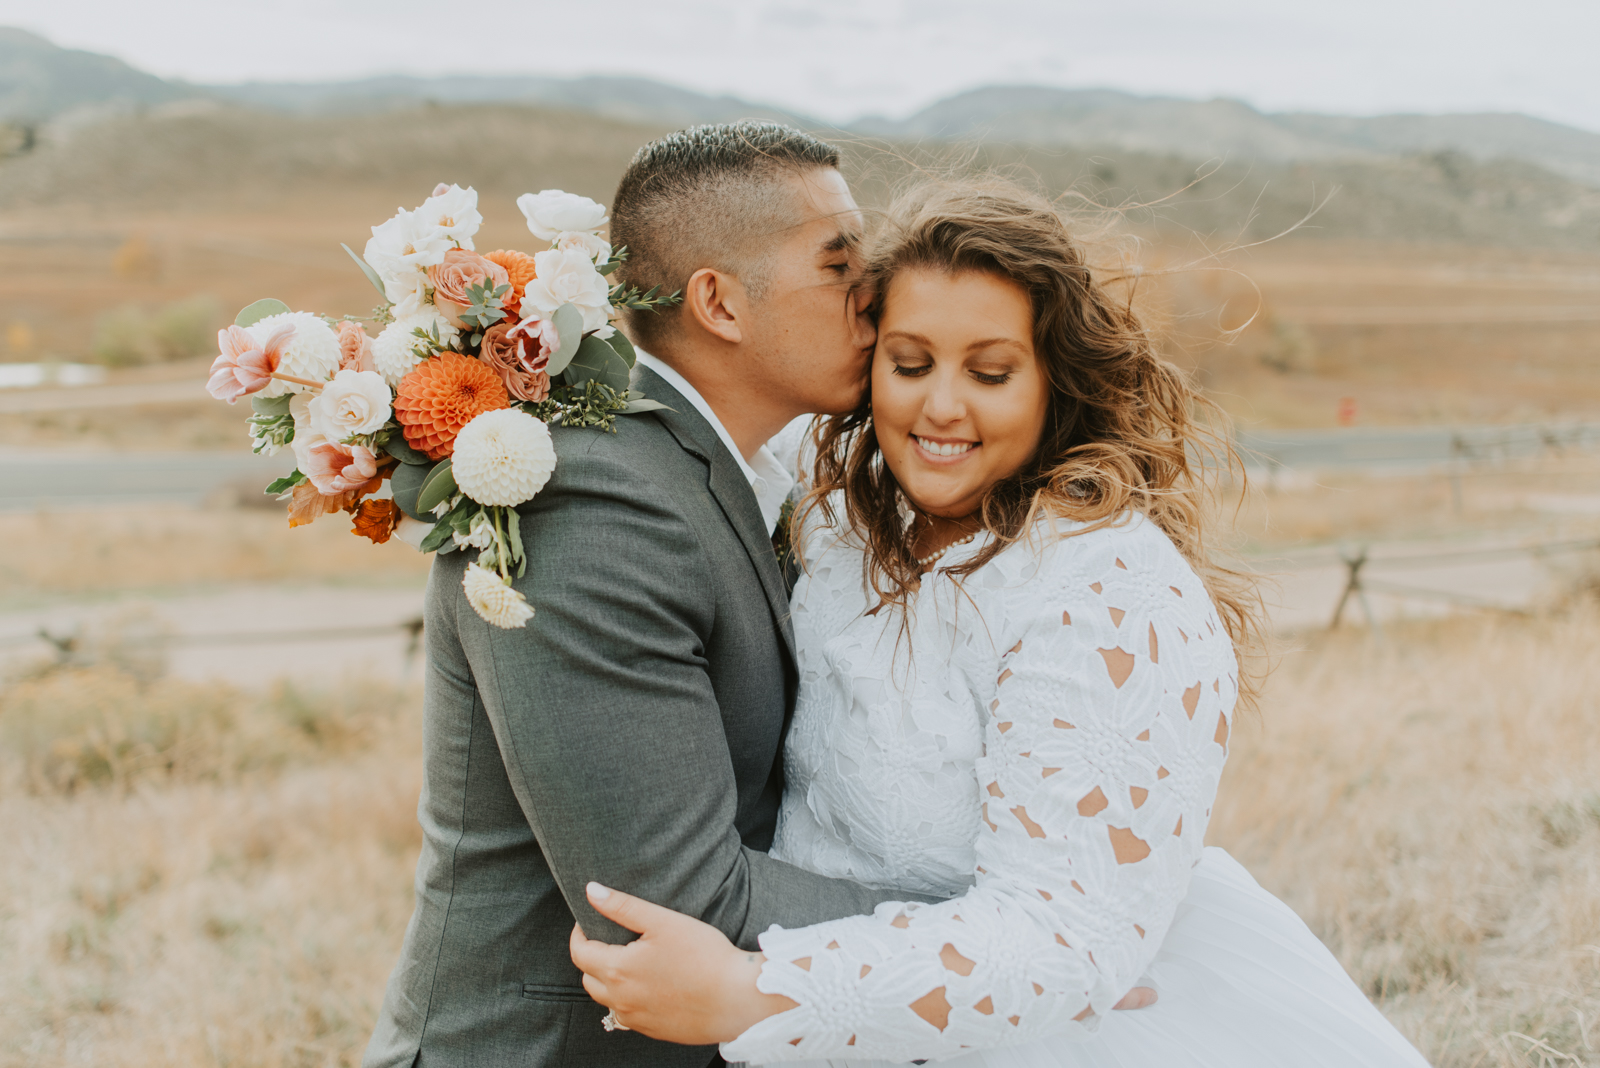 Sarah and corys bouquet details from their intimate fall backyard elopement in Fort Collins Colorado